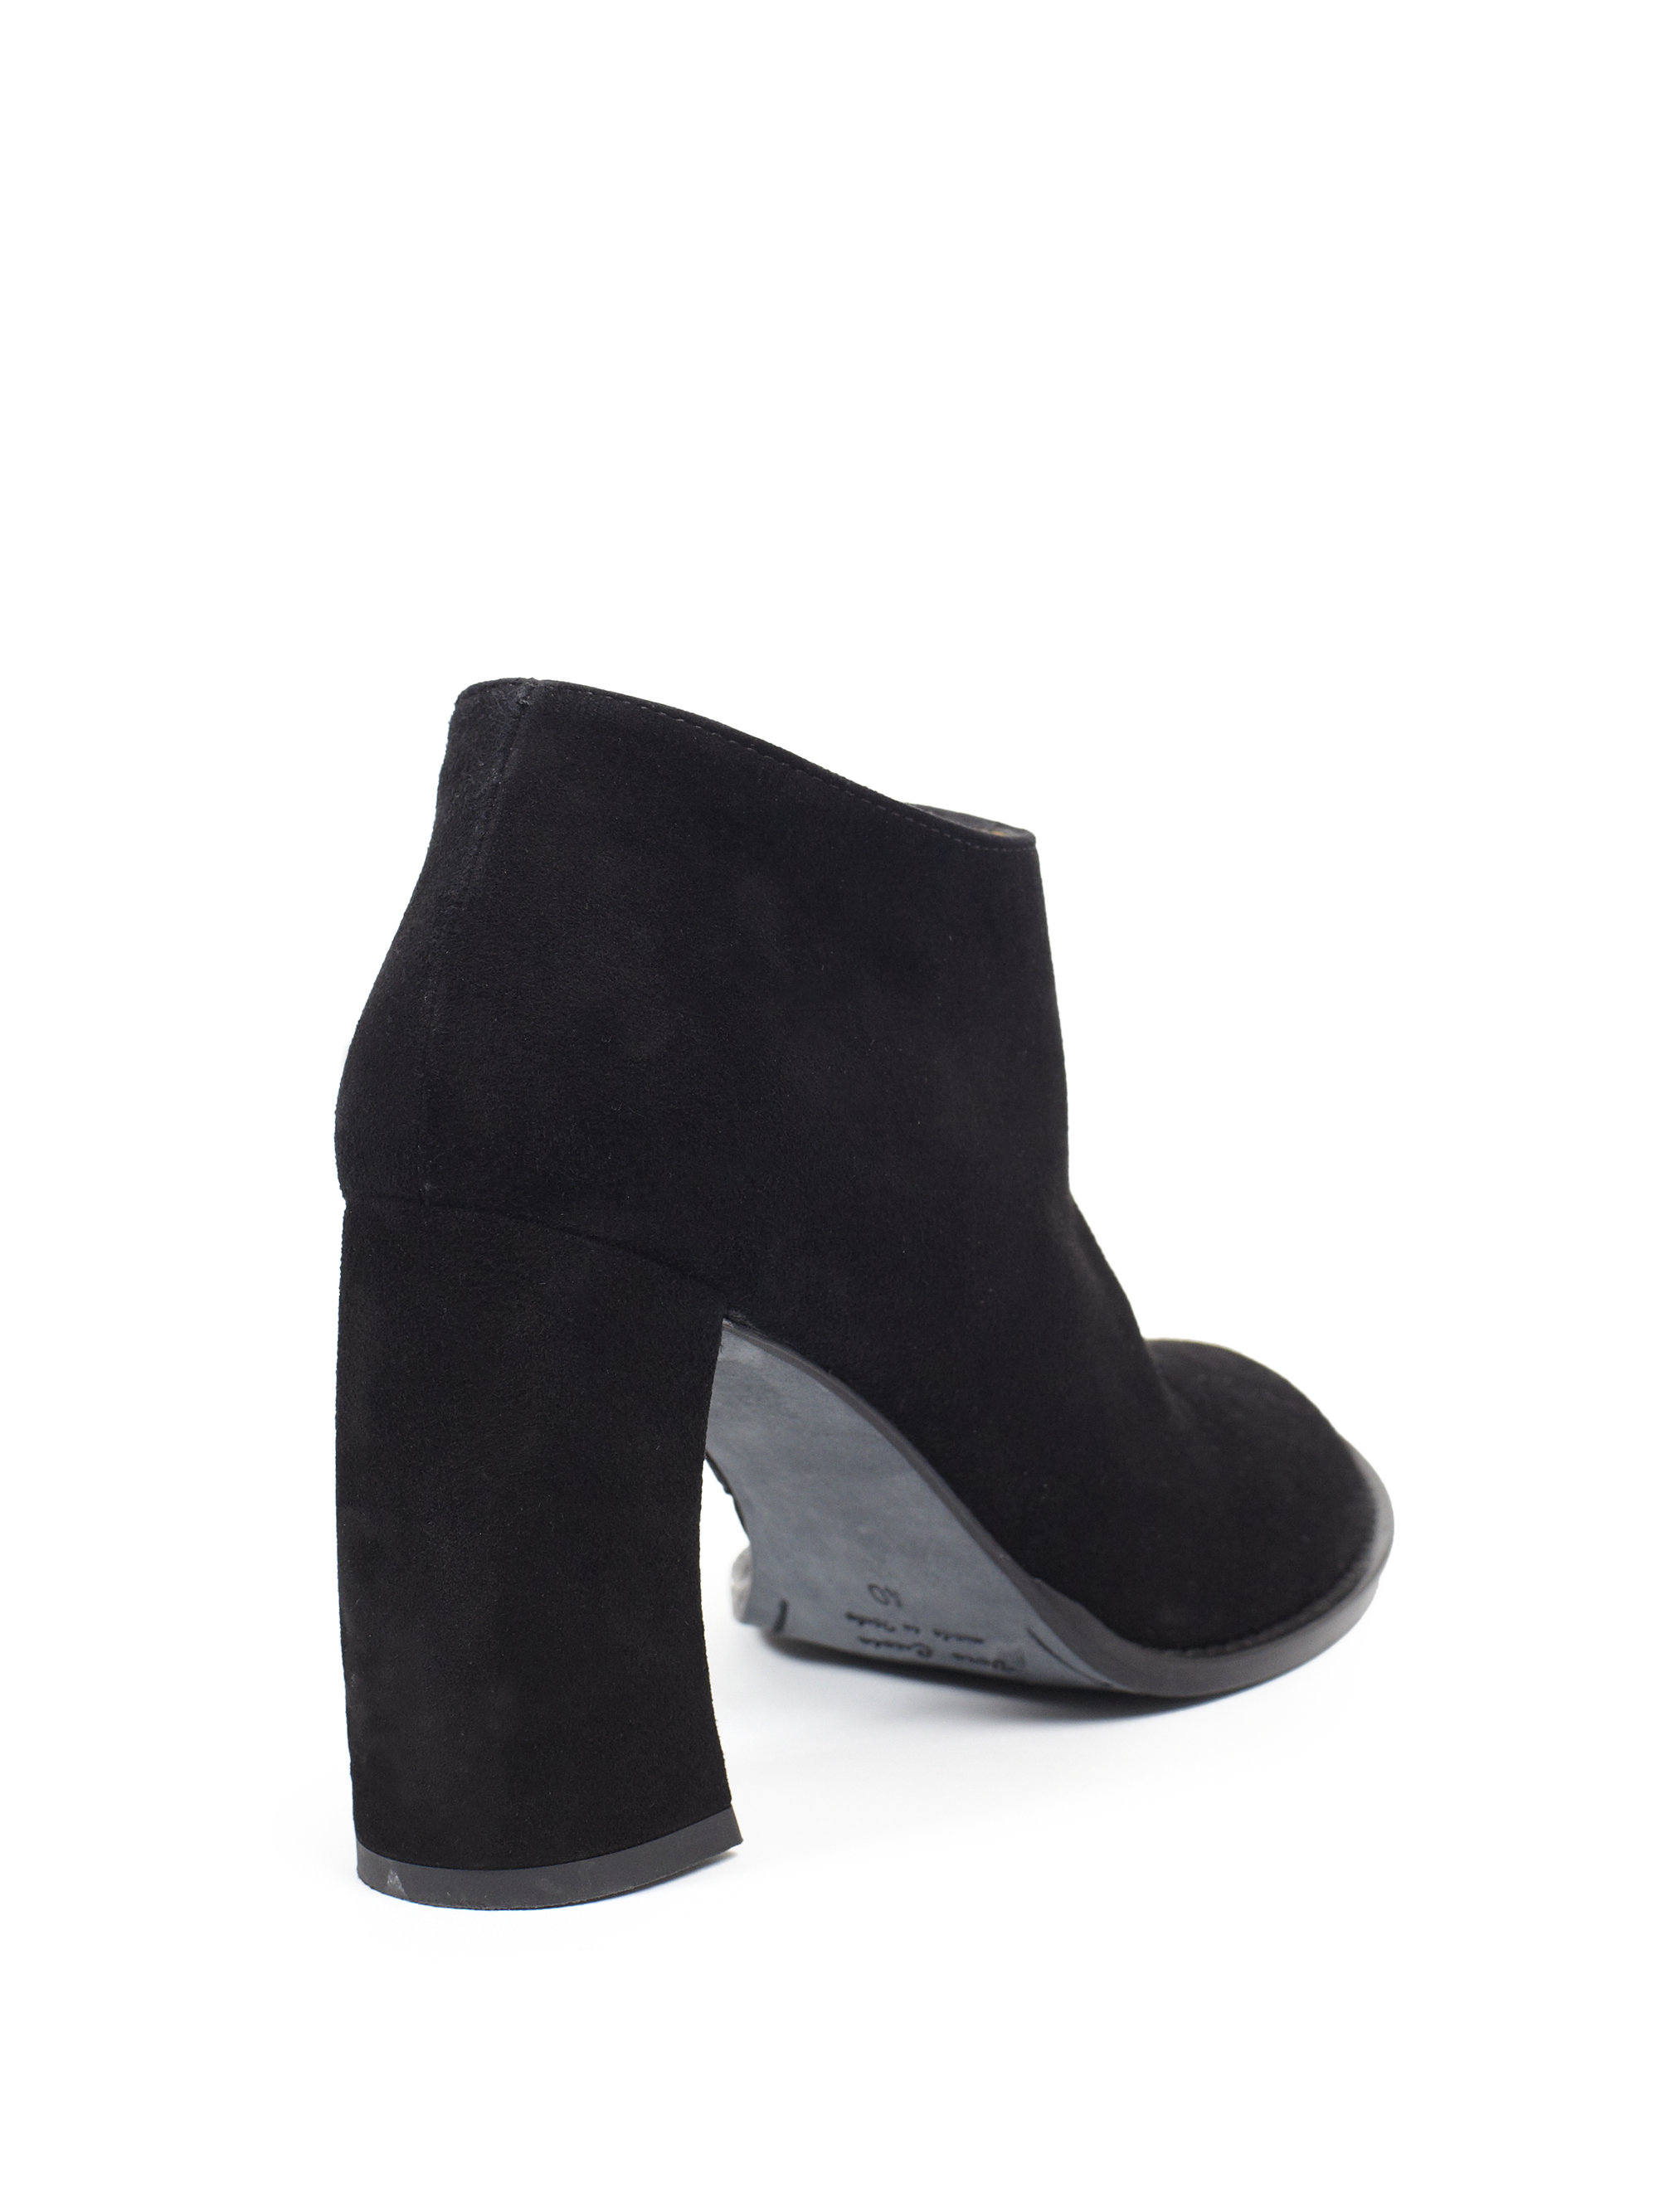 17d95df8e4c6 Lyst - Ann Demeulemeester Suede Banana-Heel Ankle Boots in Black